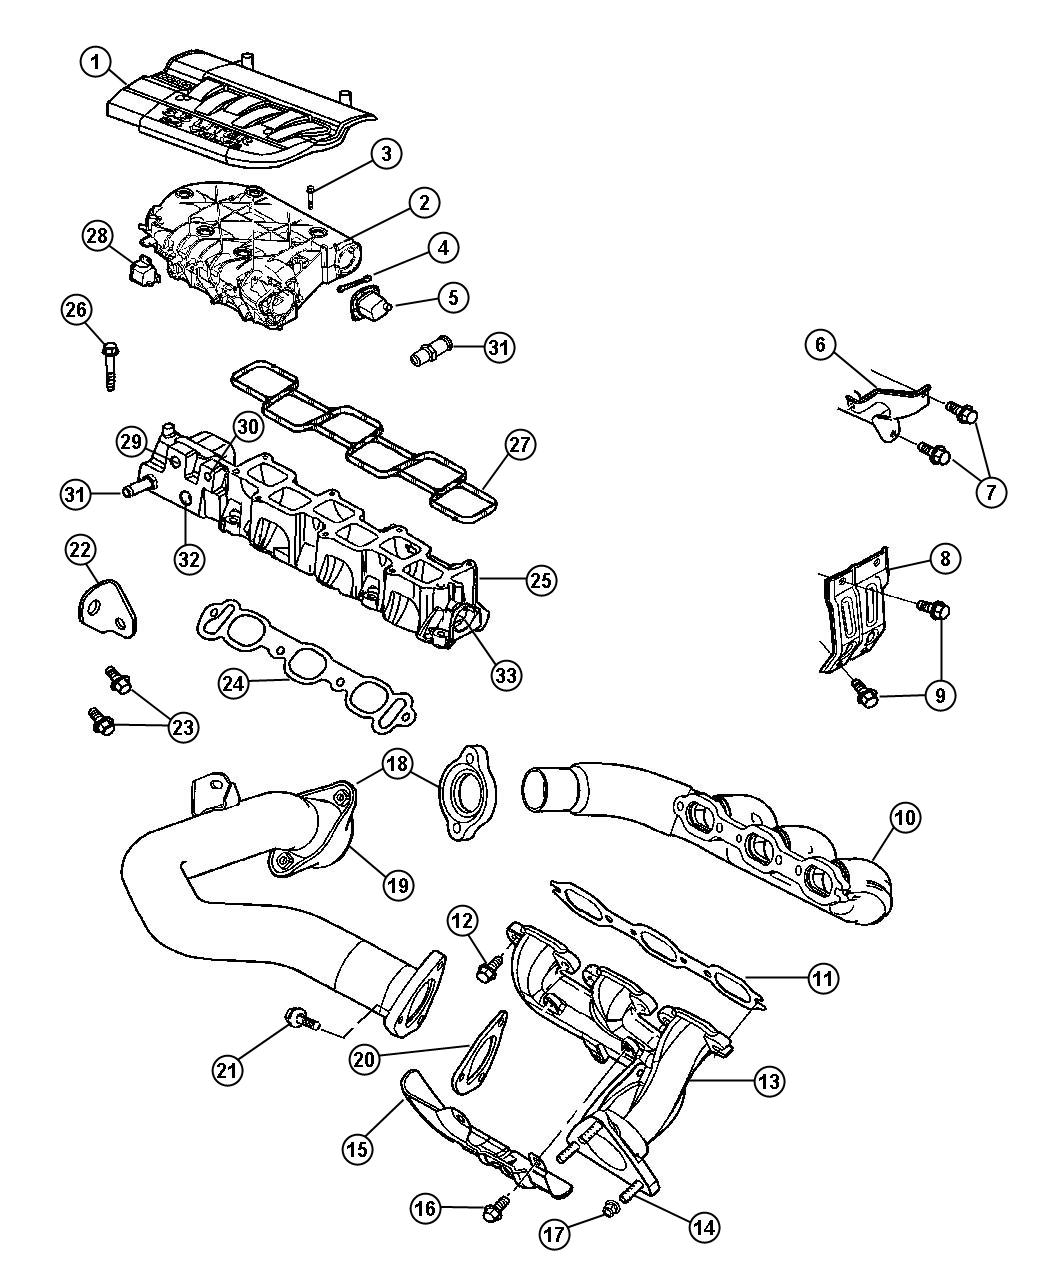 Intake Exhaust Manifold Diagram Intake Free Engine Image